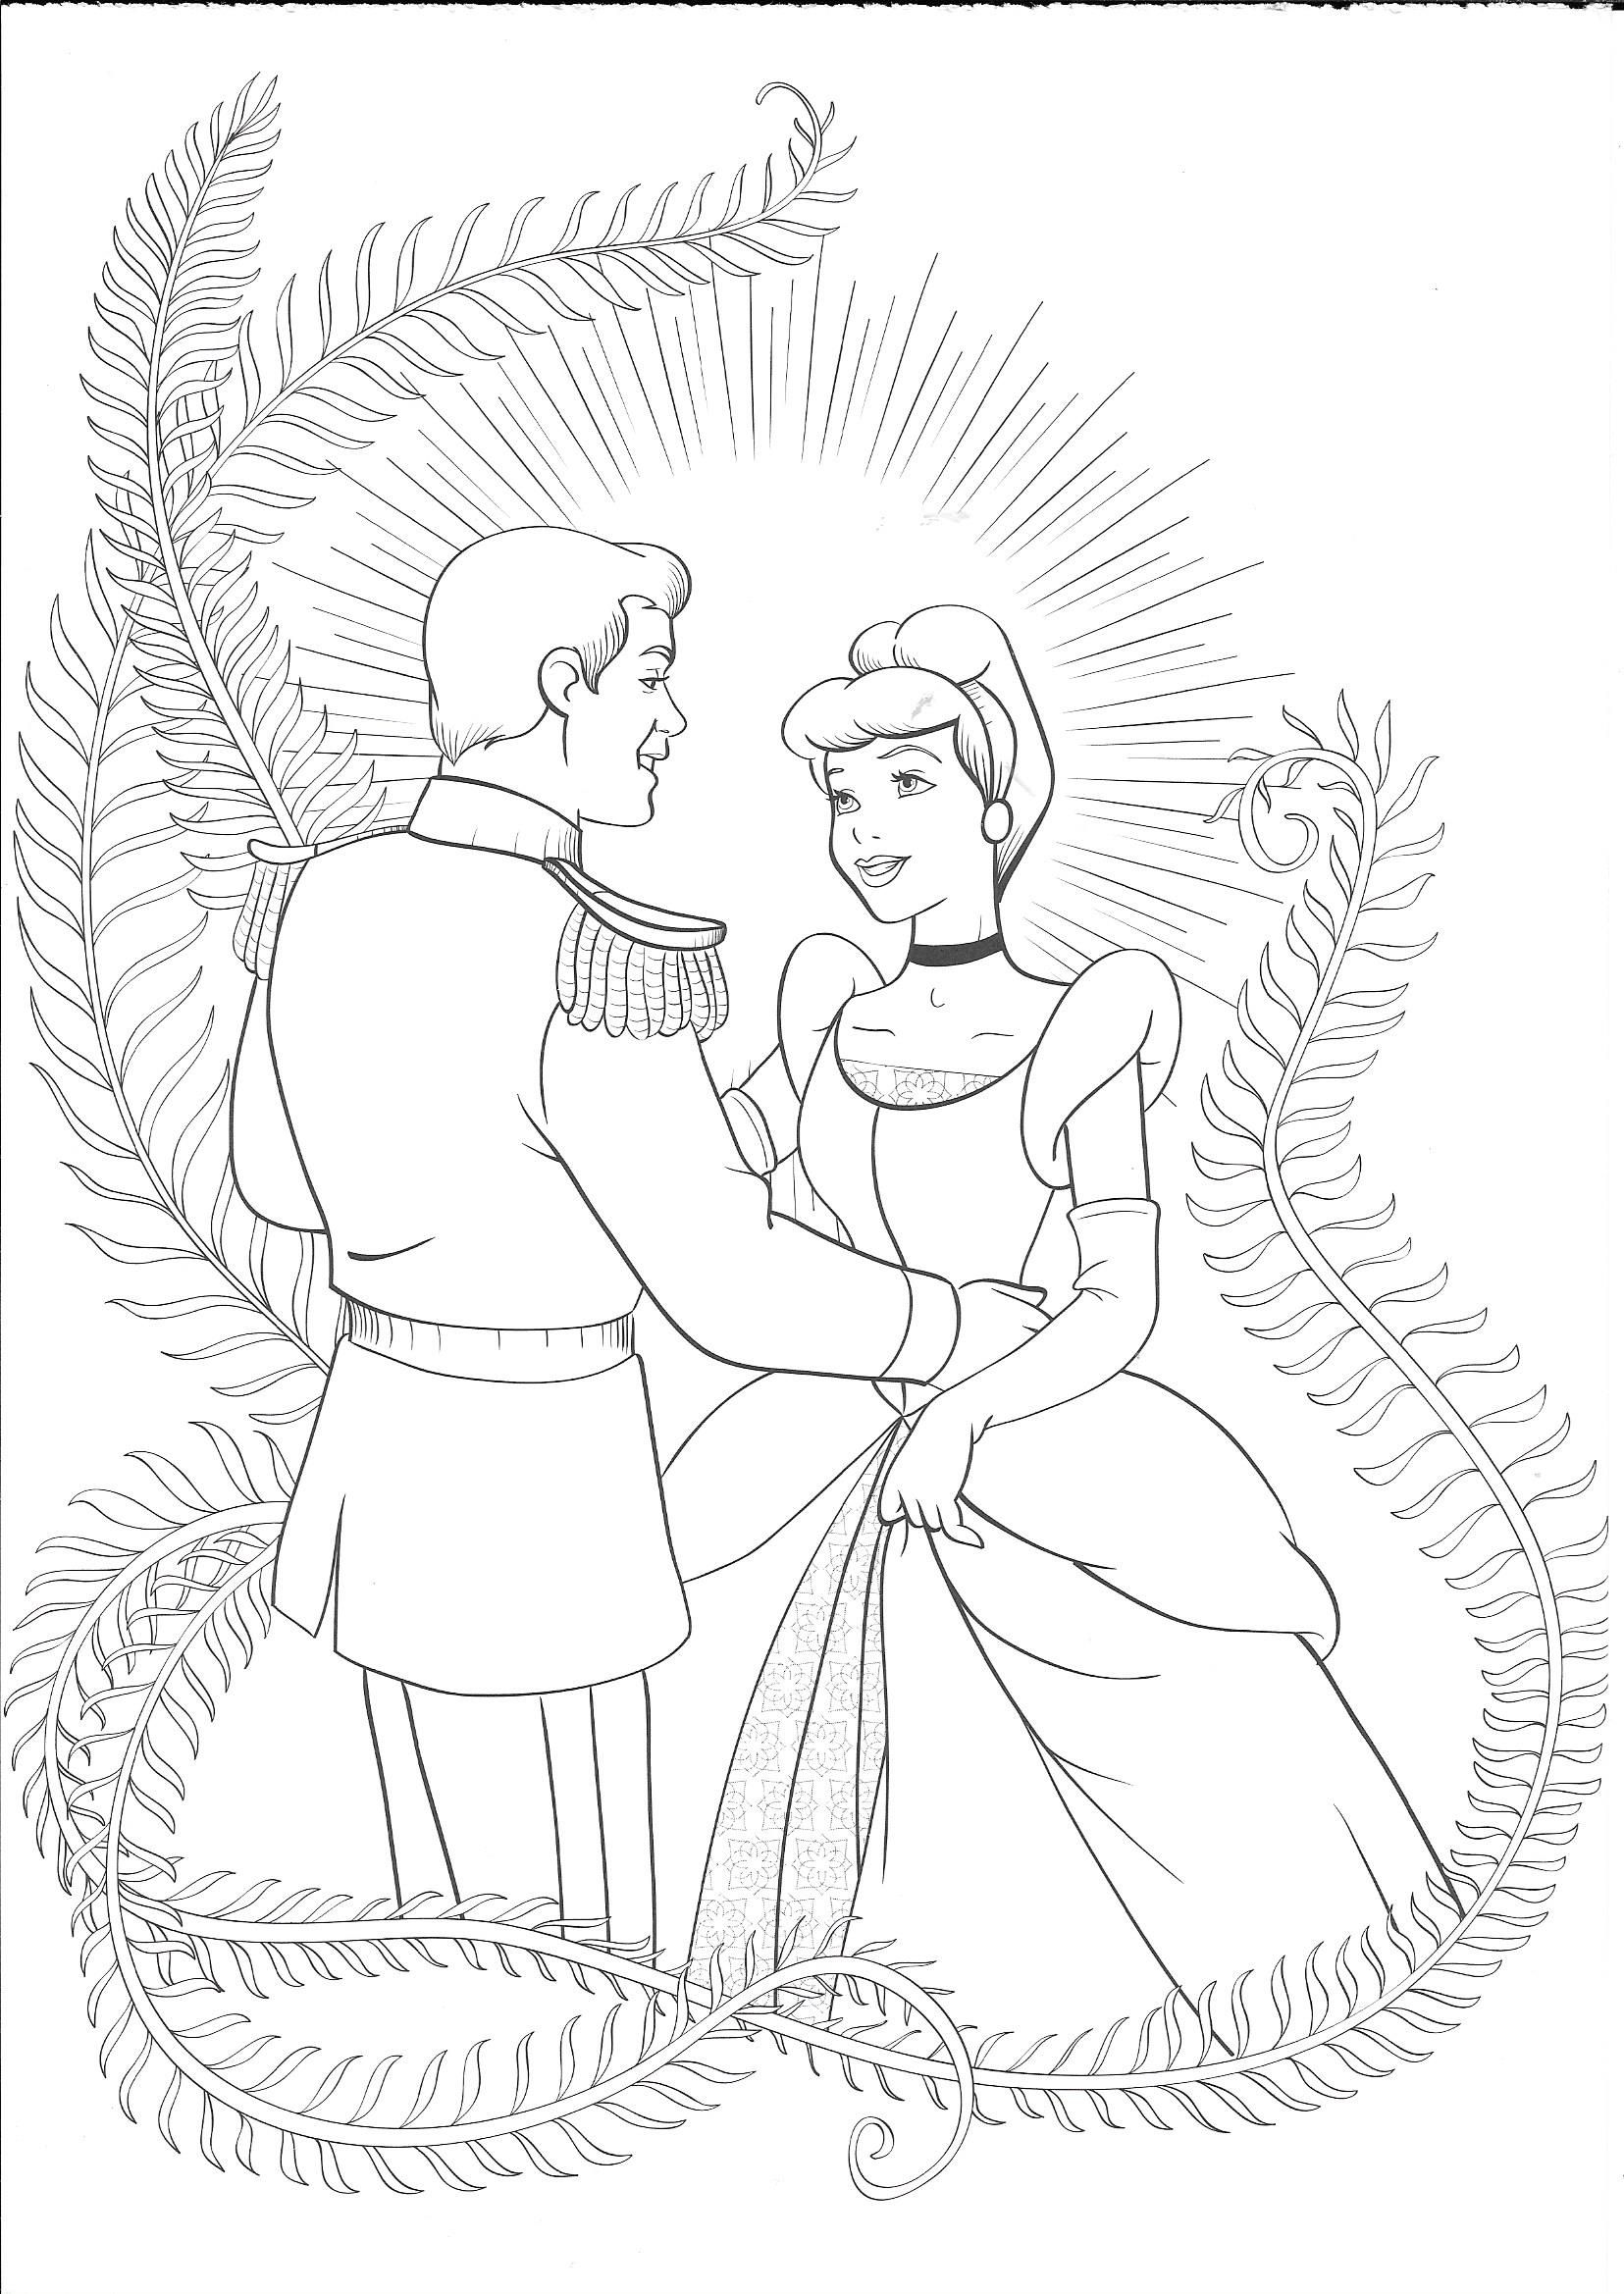 We Proudly Inform You That We Launched A New Youtube Channel Kids Coloring Pag Cinderella Coloring Pages Disney Coloring Pages Disney Princess Coloring Pages